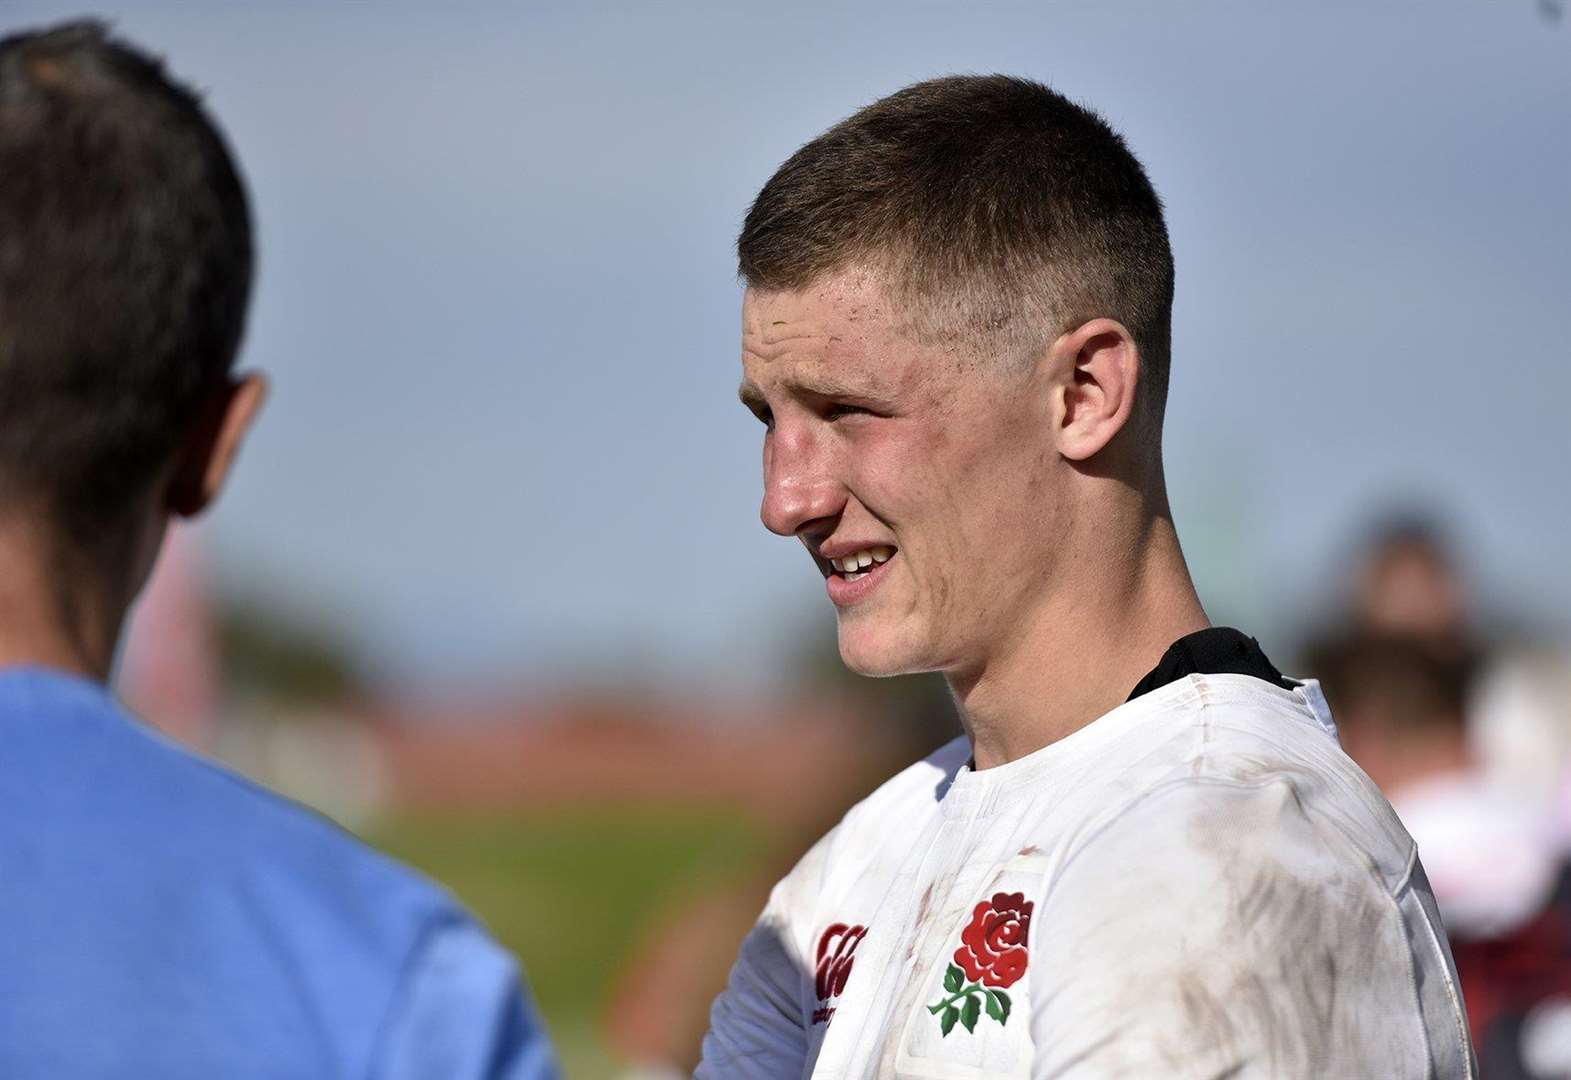 Alex Coles and Fraser Dingwall earn England under-20 call-up for Six Nations